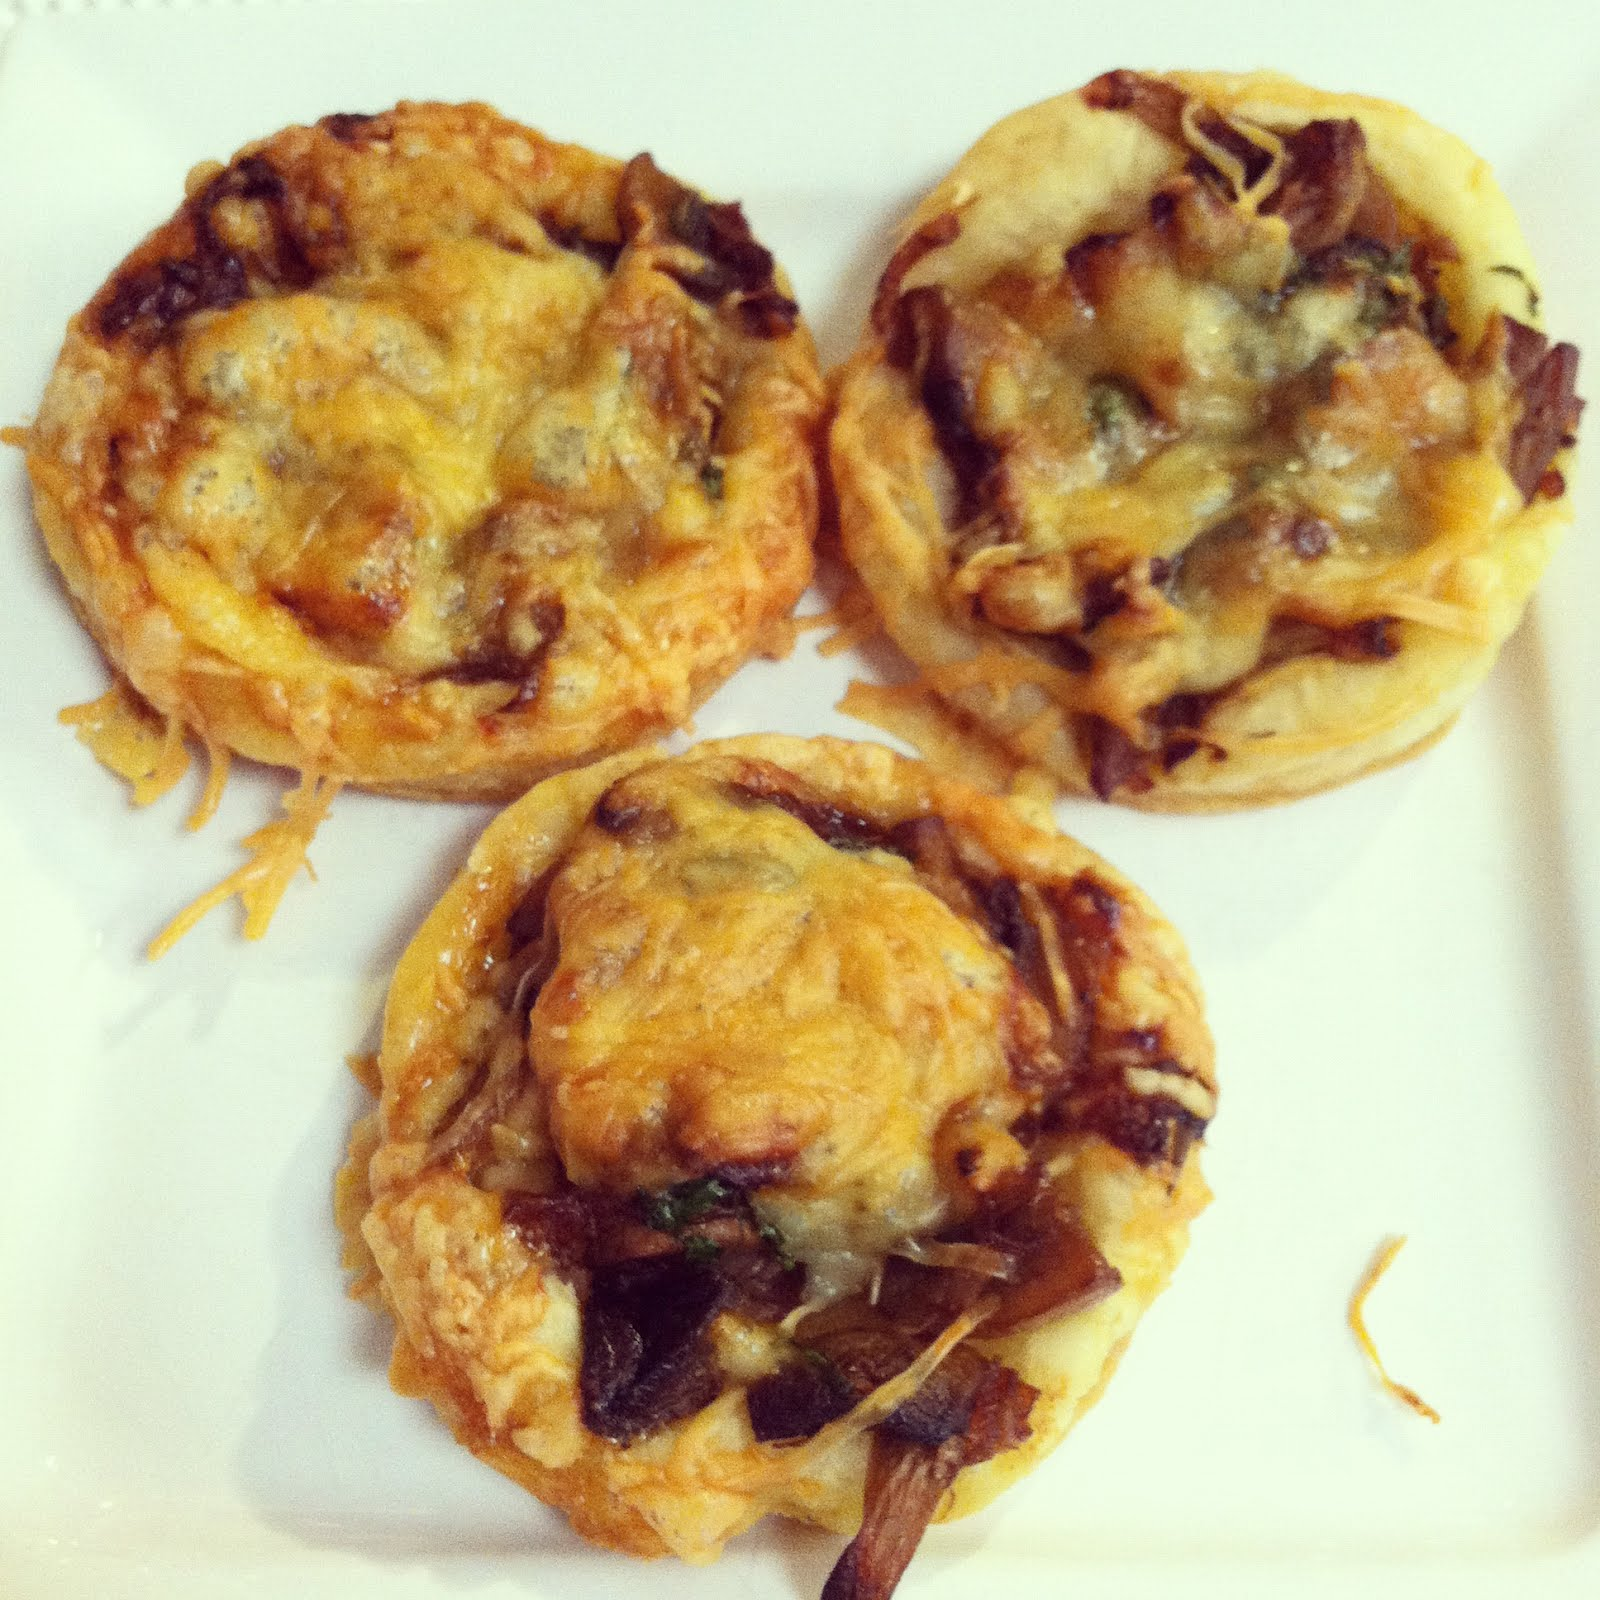 ... and dirty diapers: Carmelized Onion, Mushroom, and Gruyere Tartlets